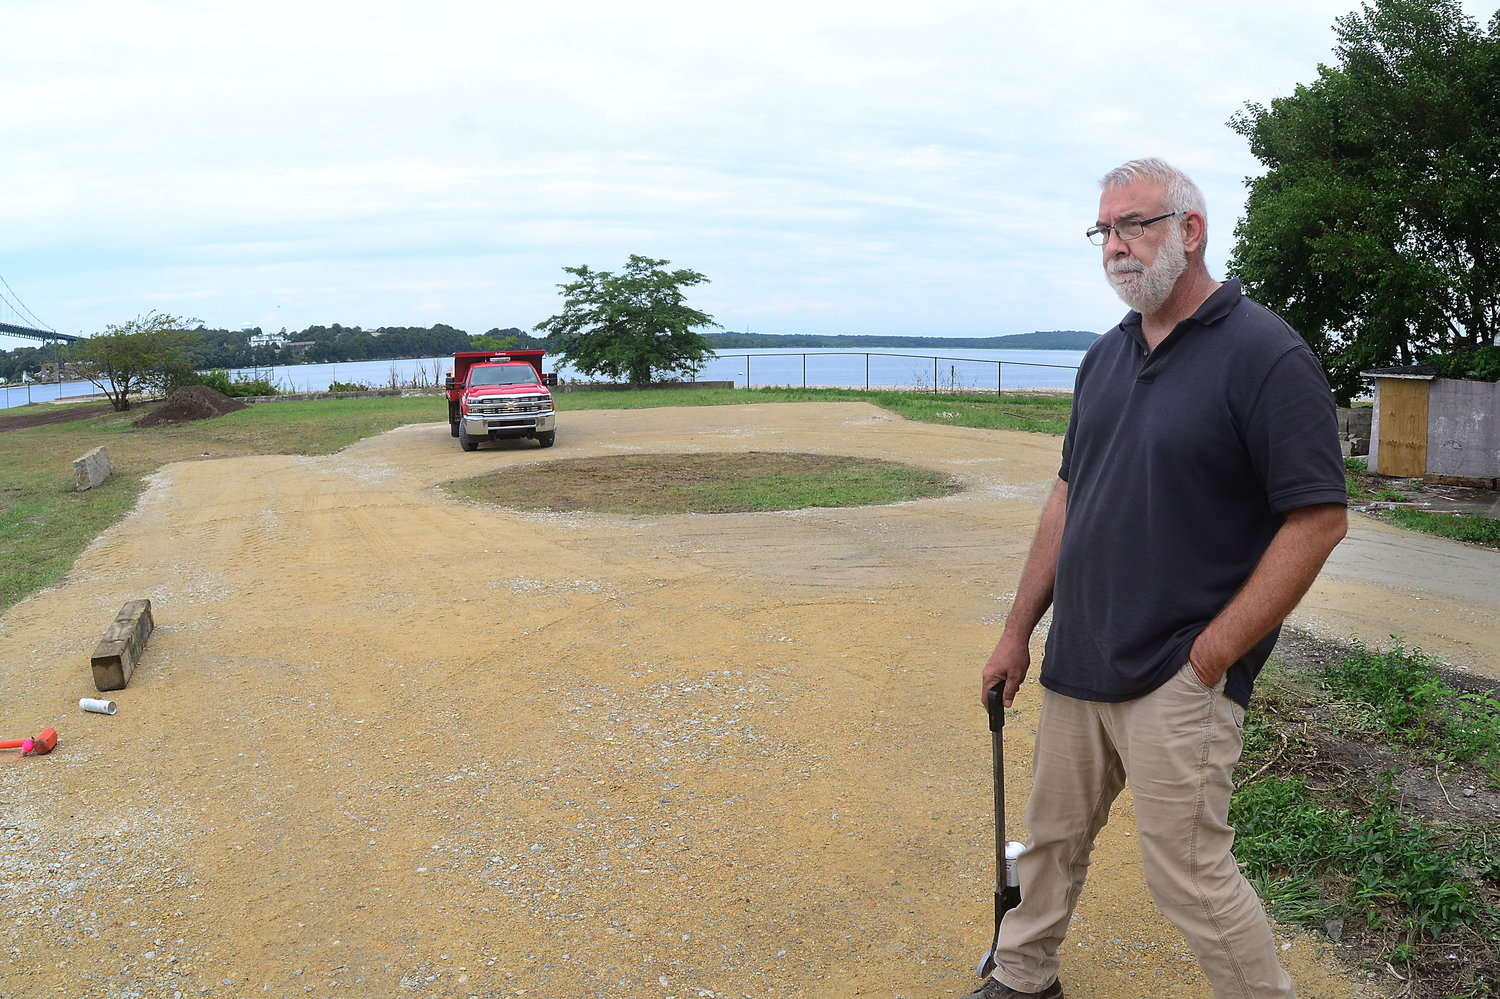 Department of Public Works Director Brian Woodhead looks over the grounds as his team works to open Mt. Hope Park on Friday.